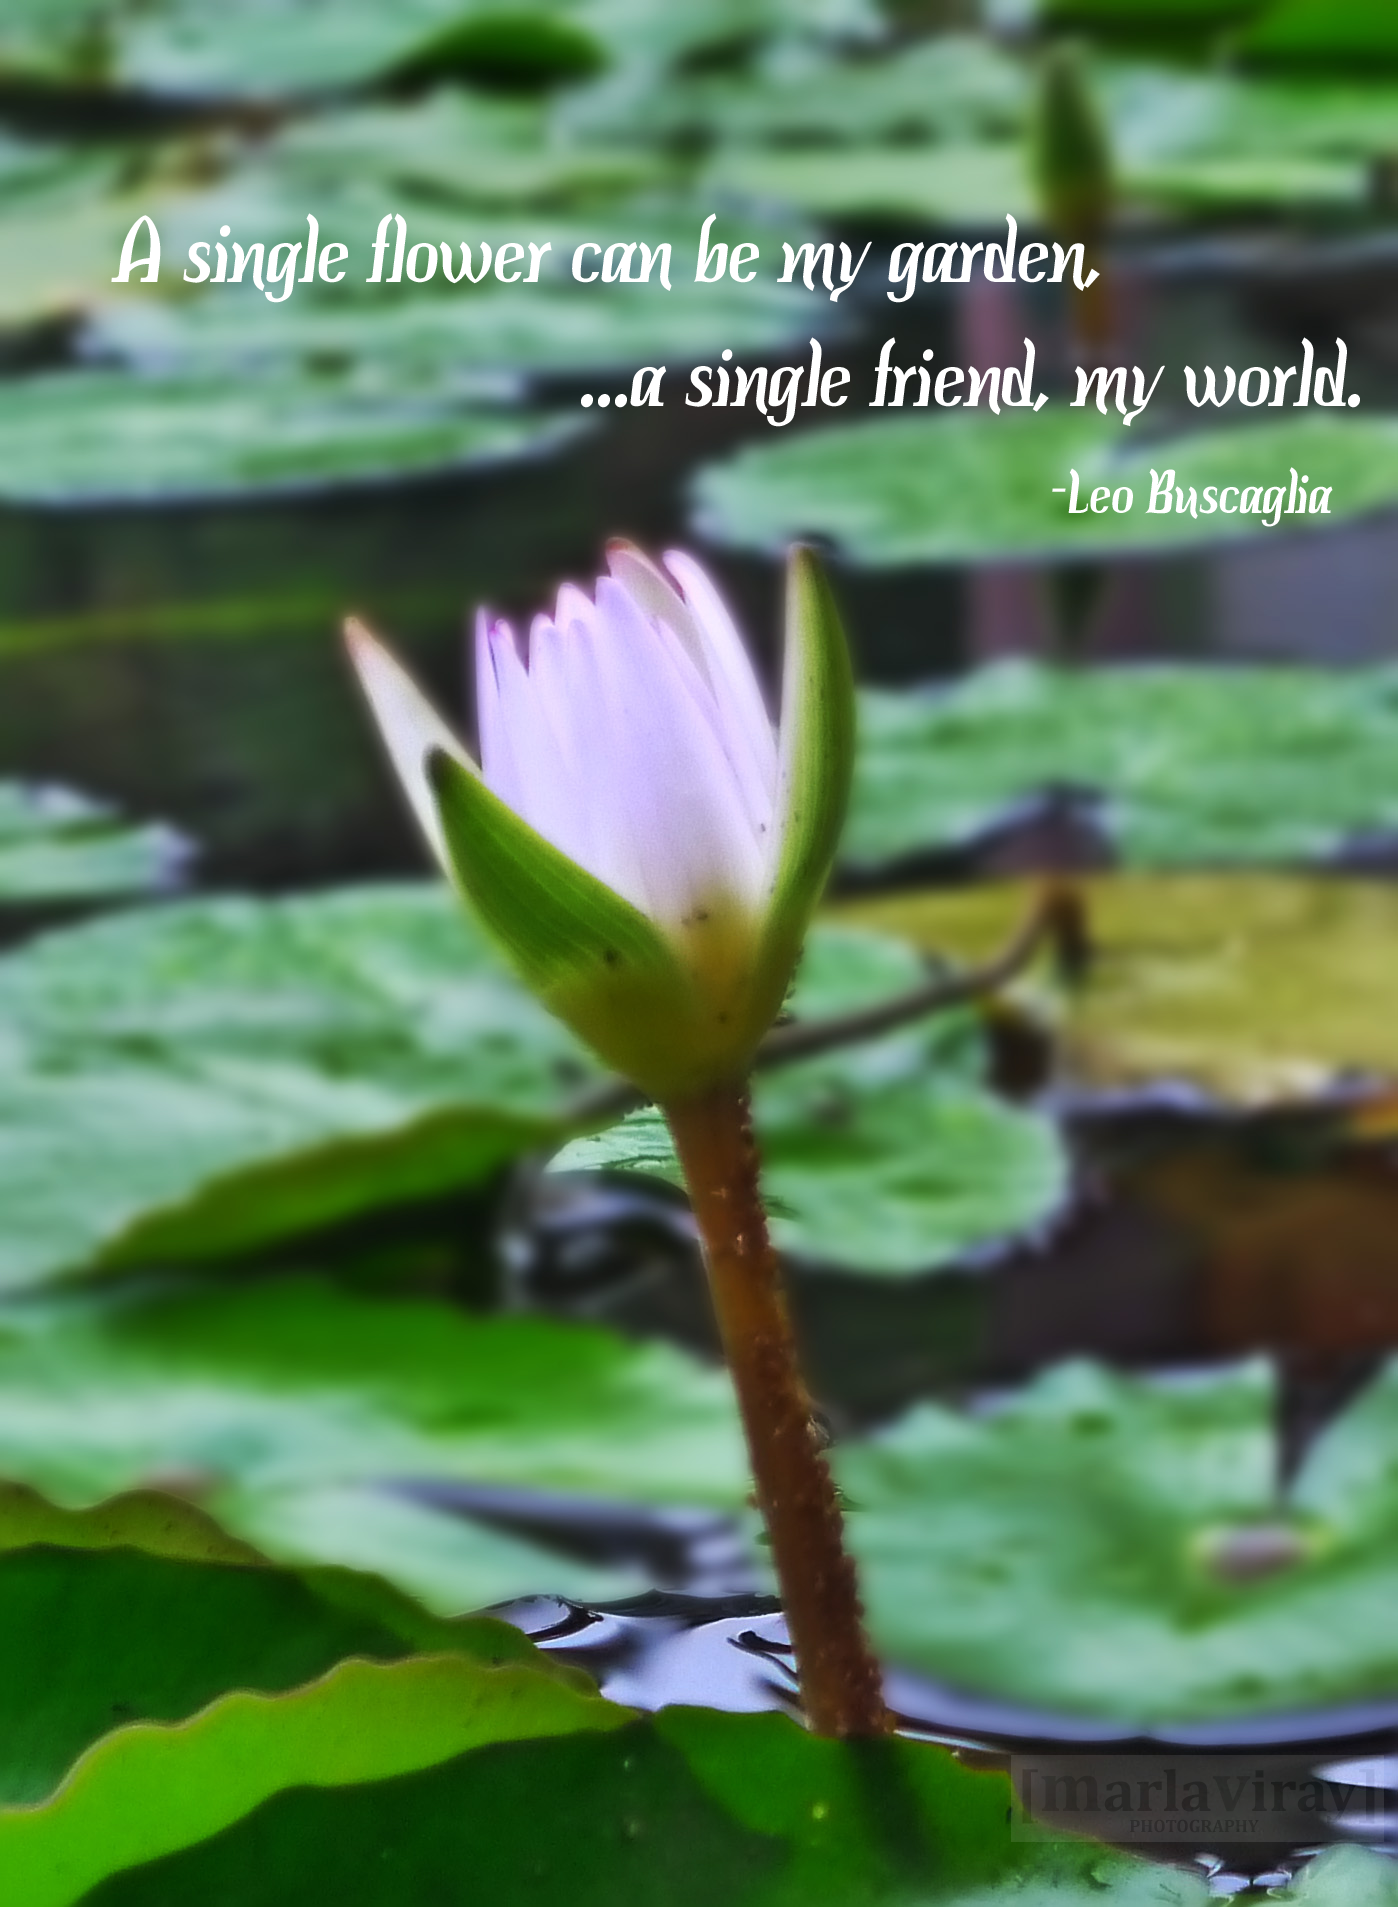 Flowers Flower quotes, Lily flower, Single flower